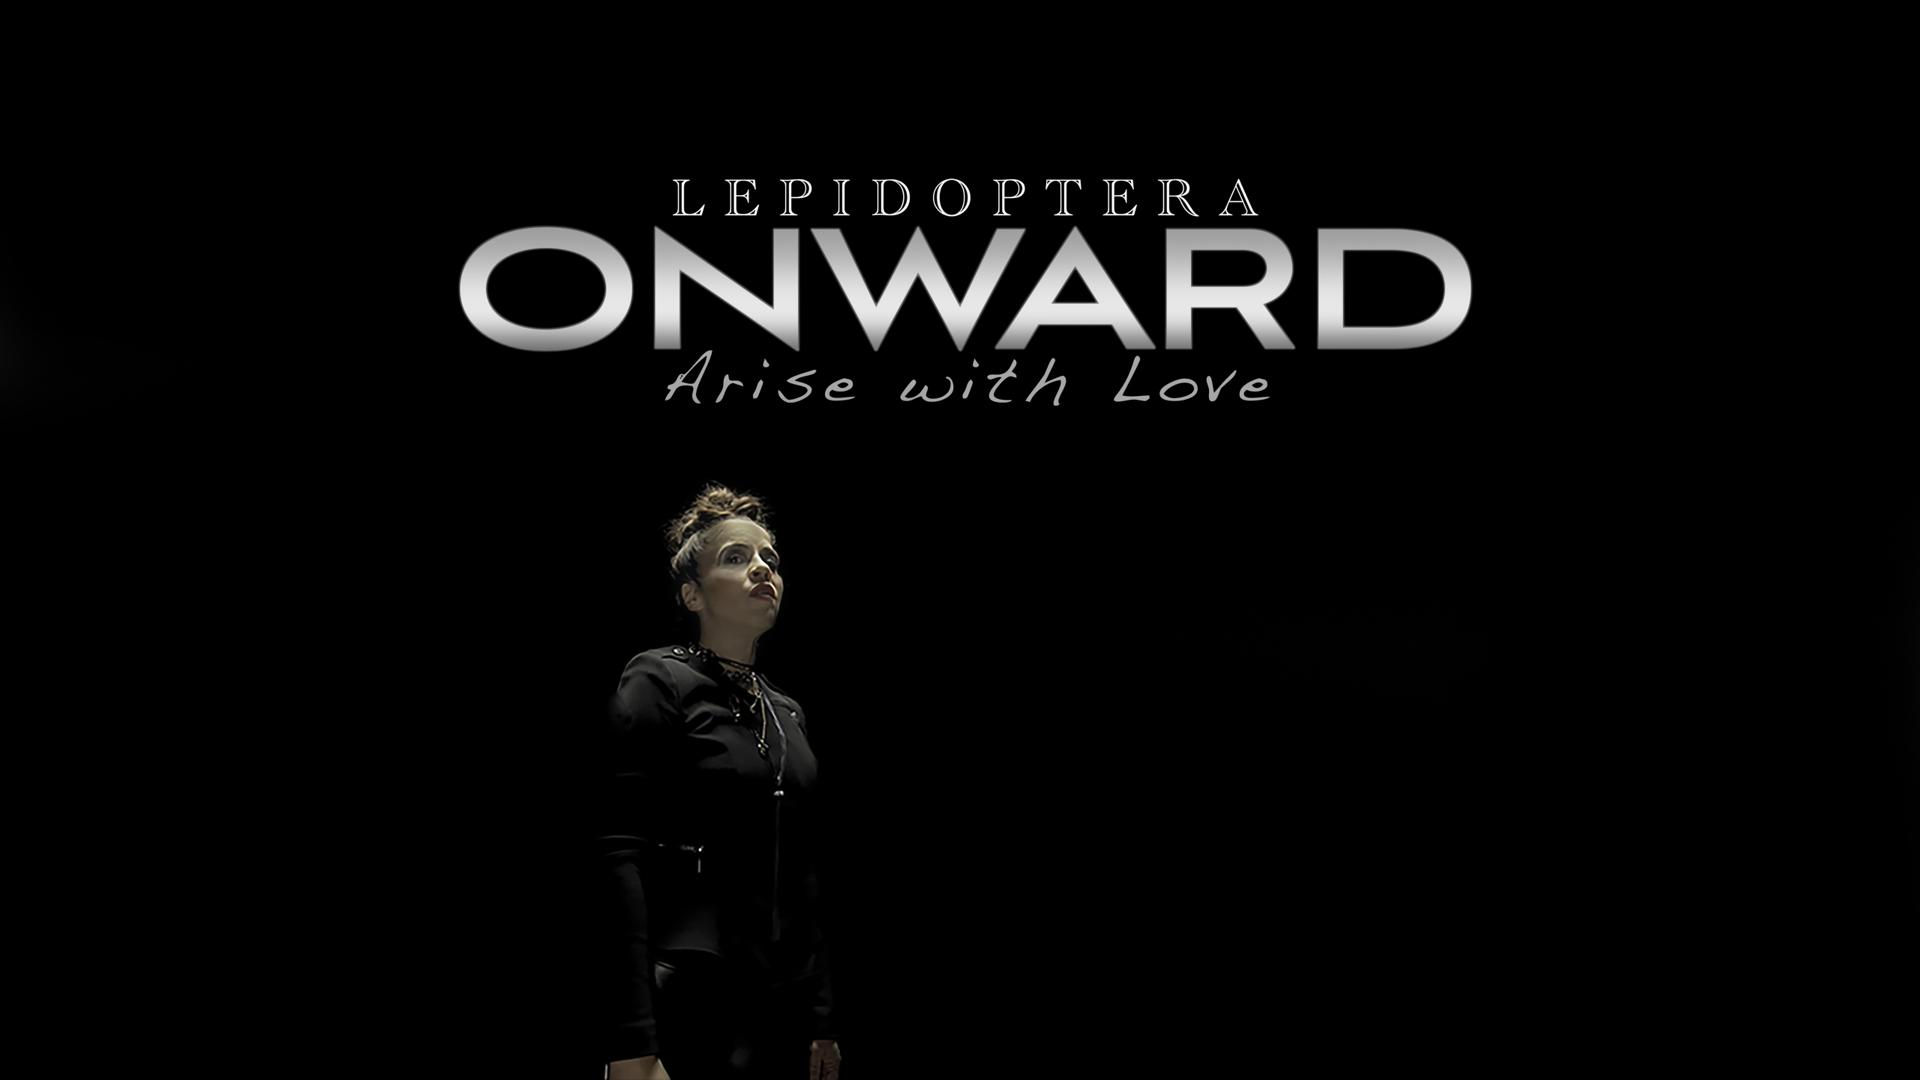 Onward, arise with love